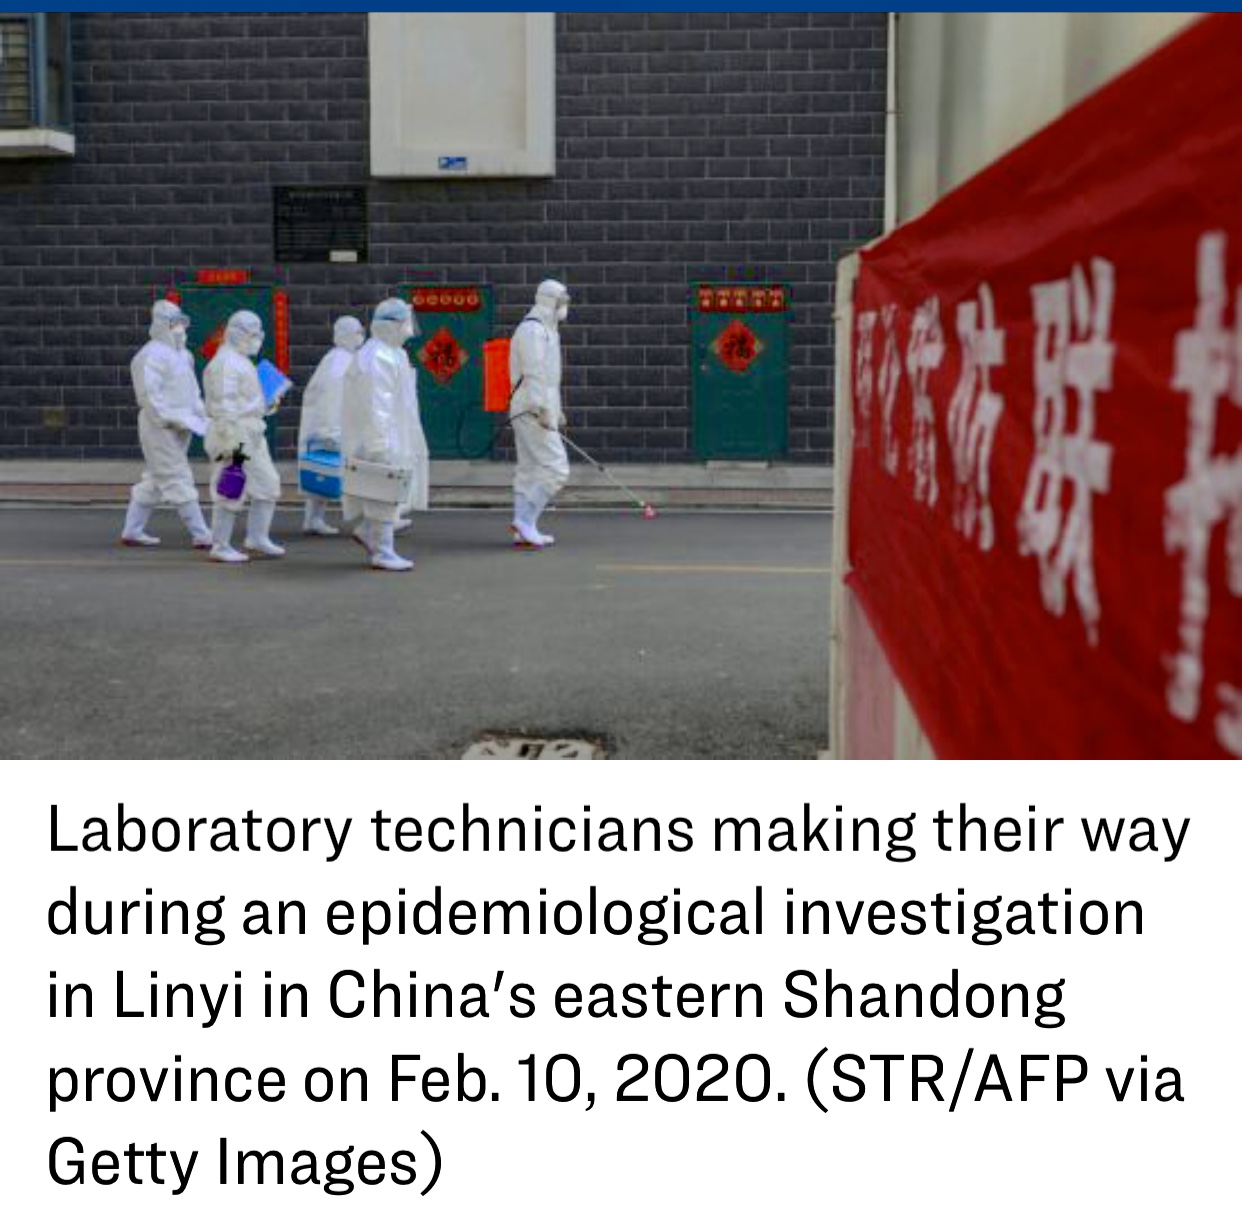 Documents Reveal Coronavirus Up to 52 Times Higher Than Reported in China's Shandong Province